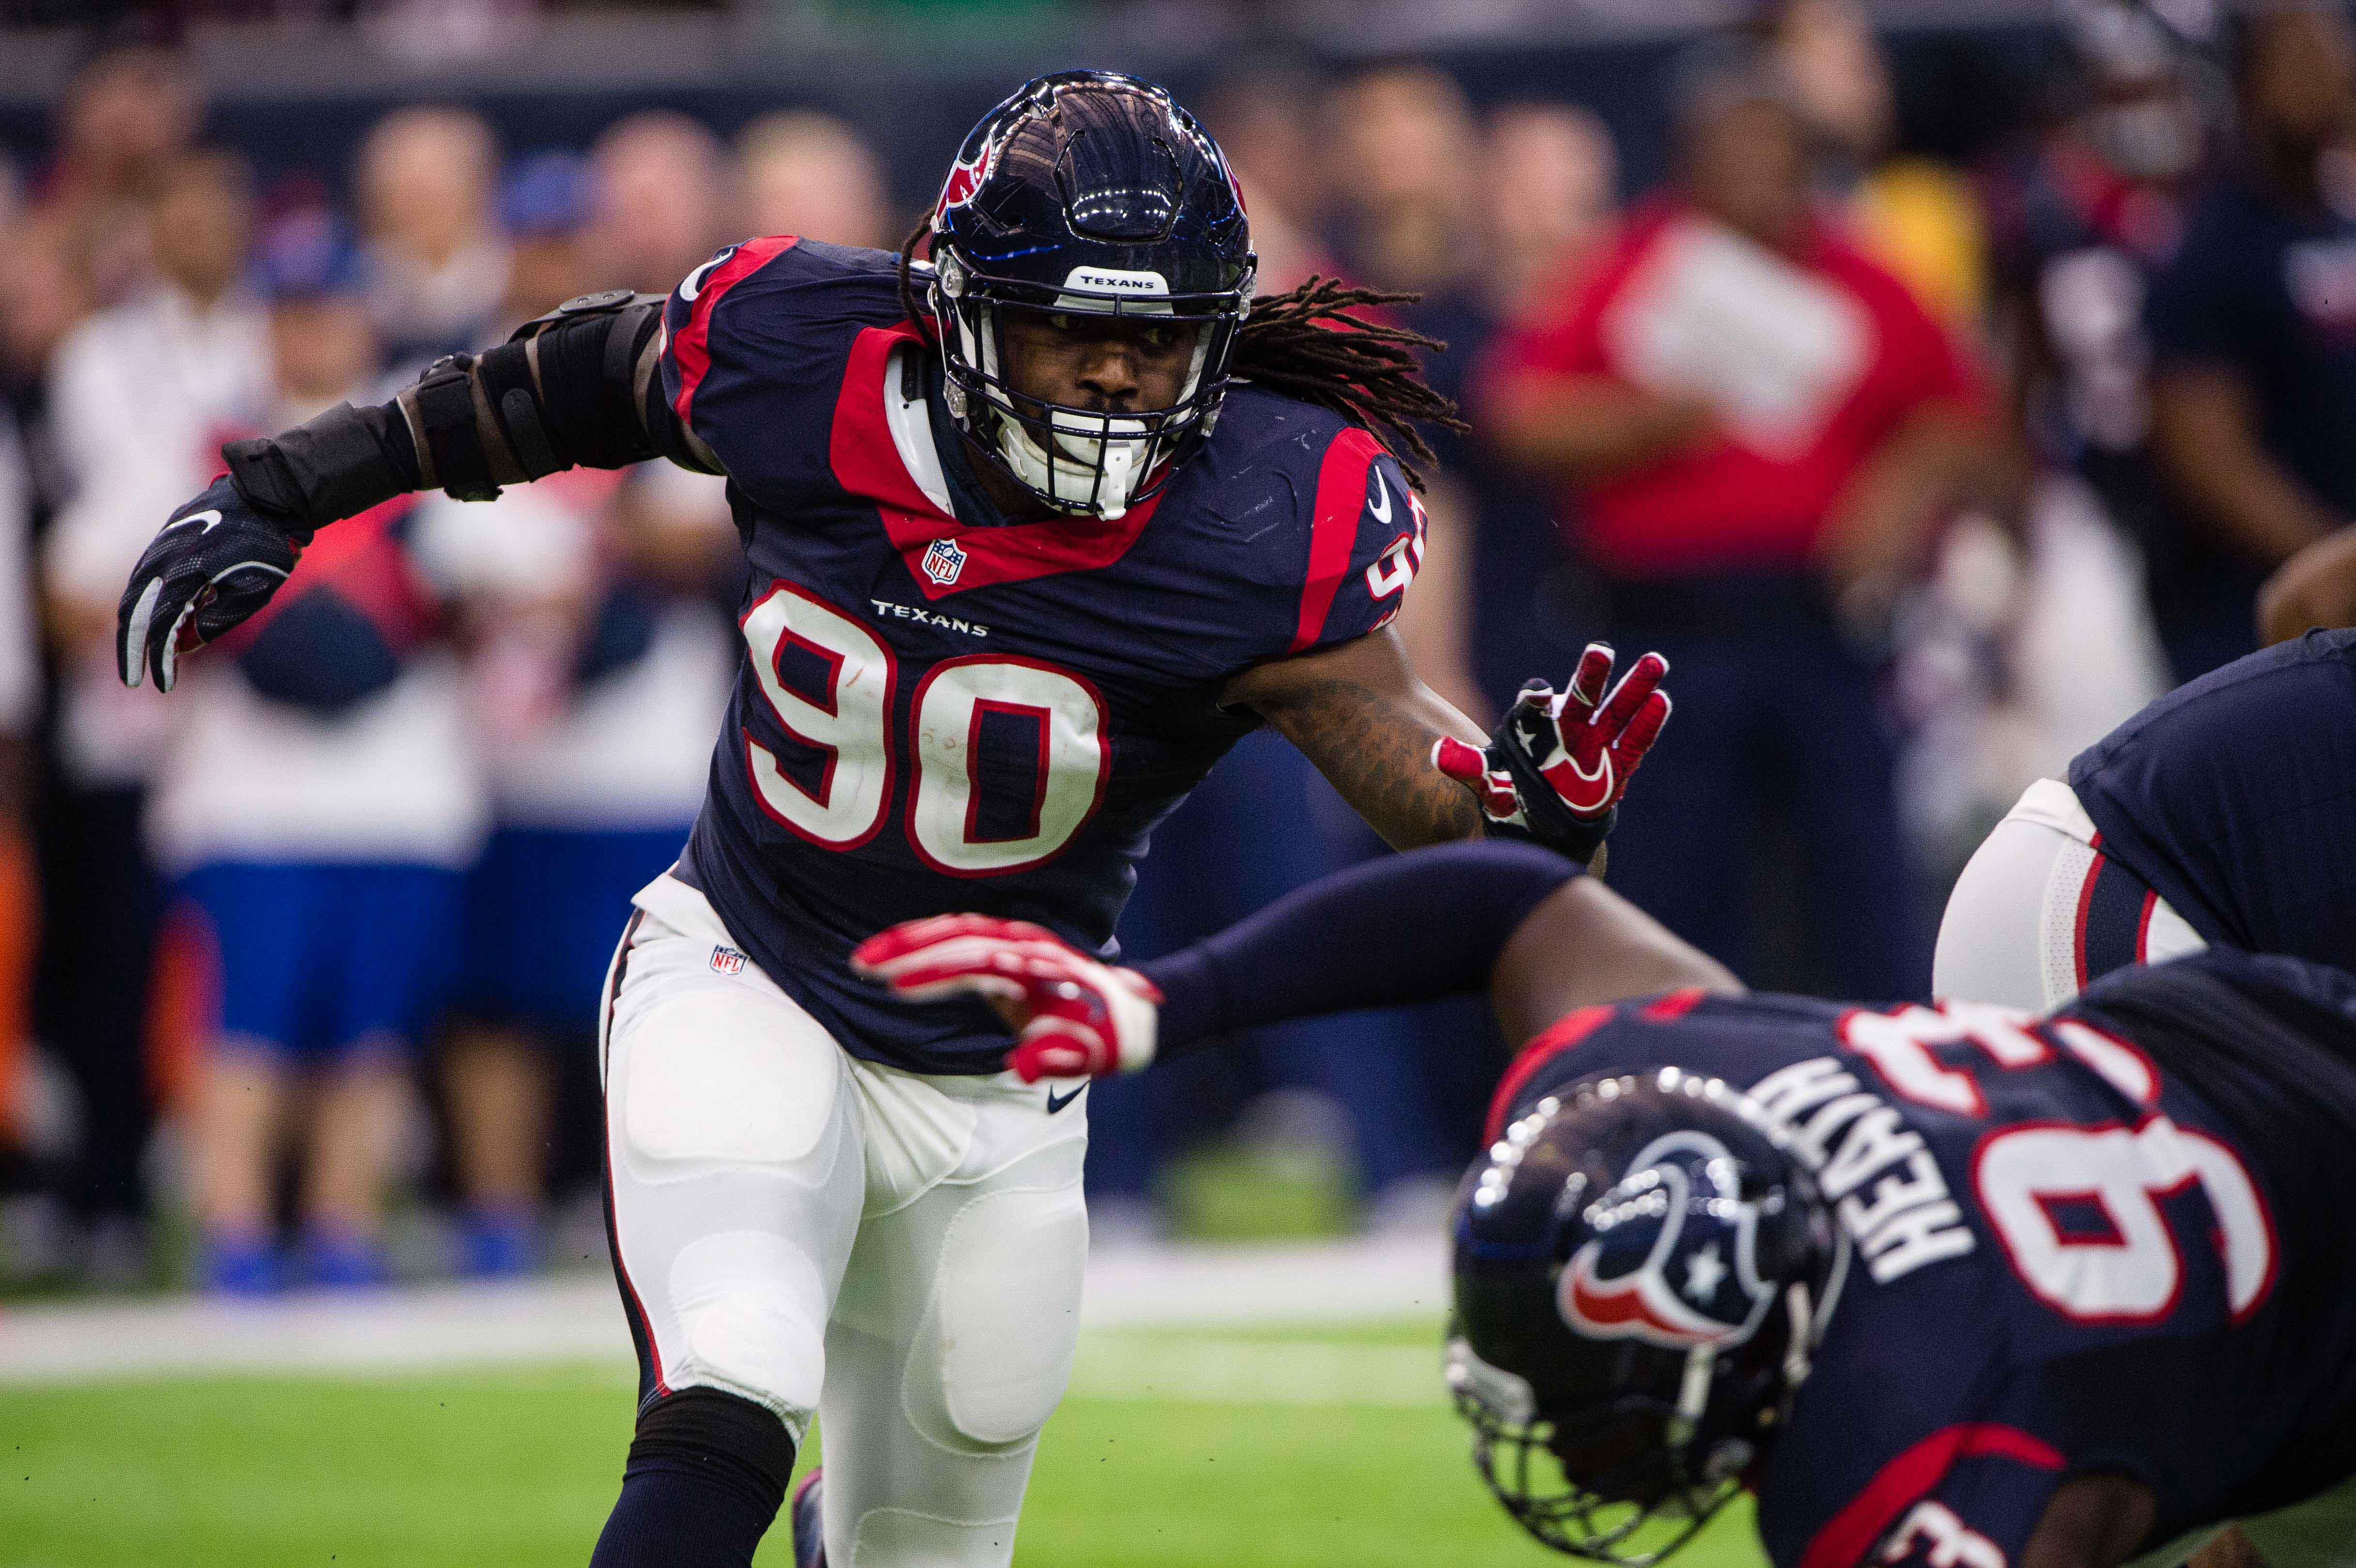 9805118-nfl-afc-wild-card-oakland-raiders-at-houston-texans